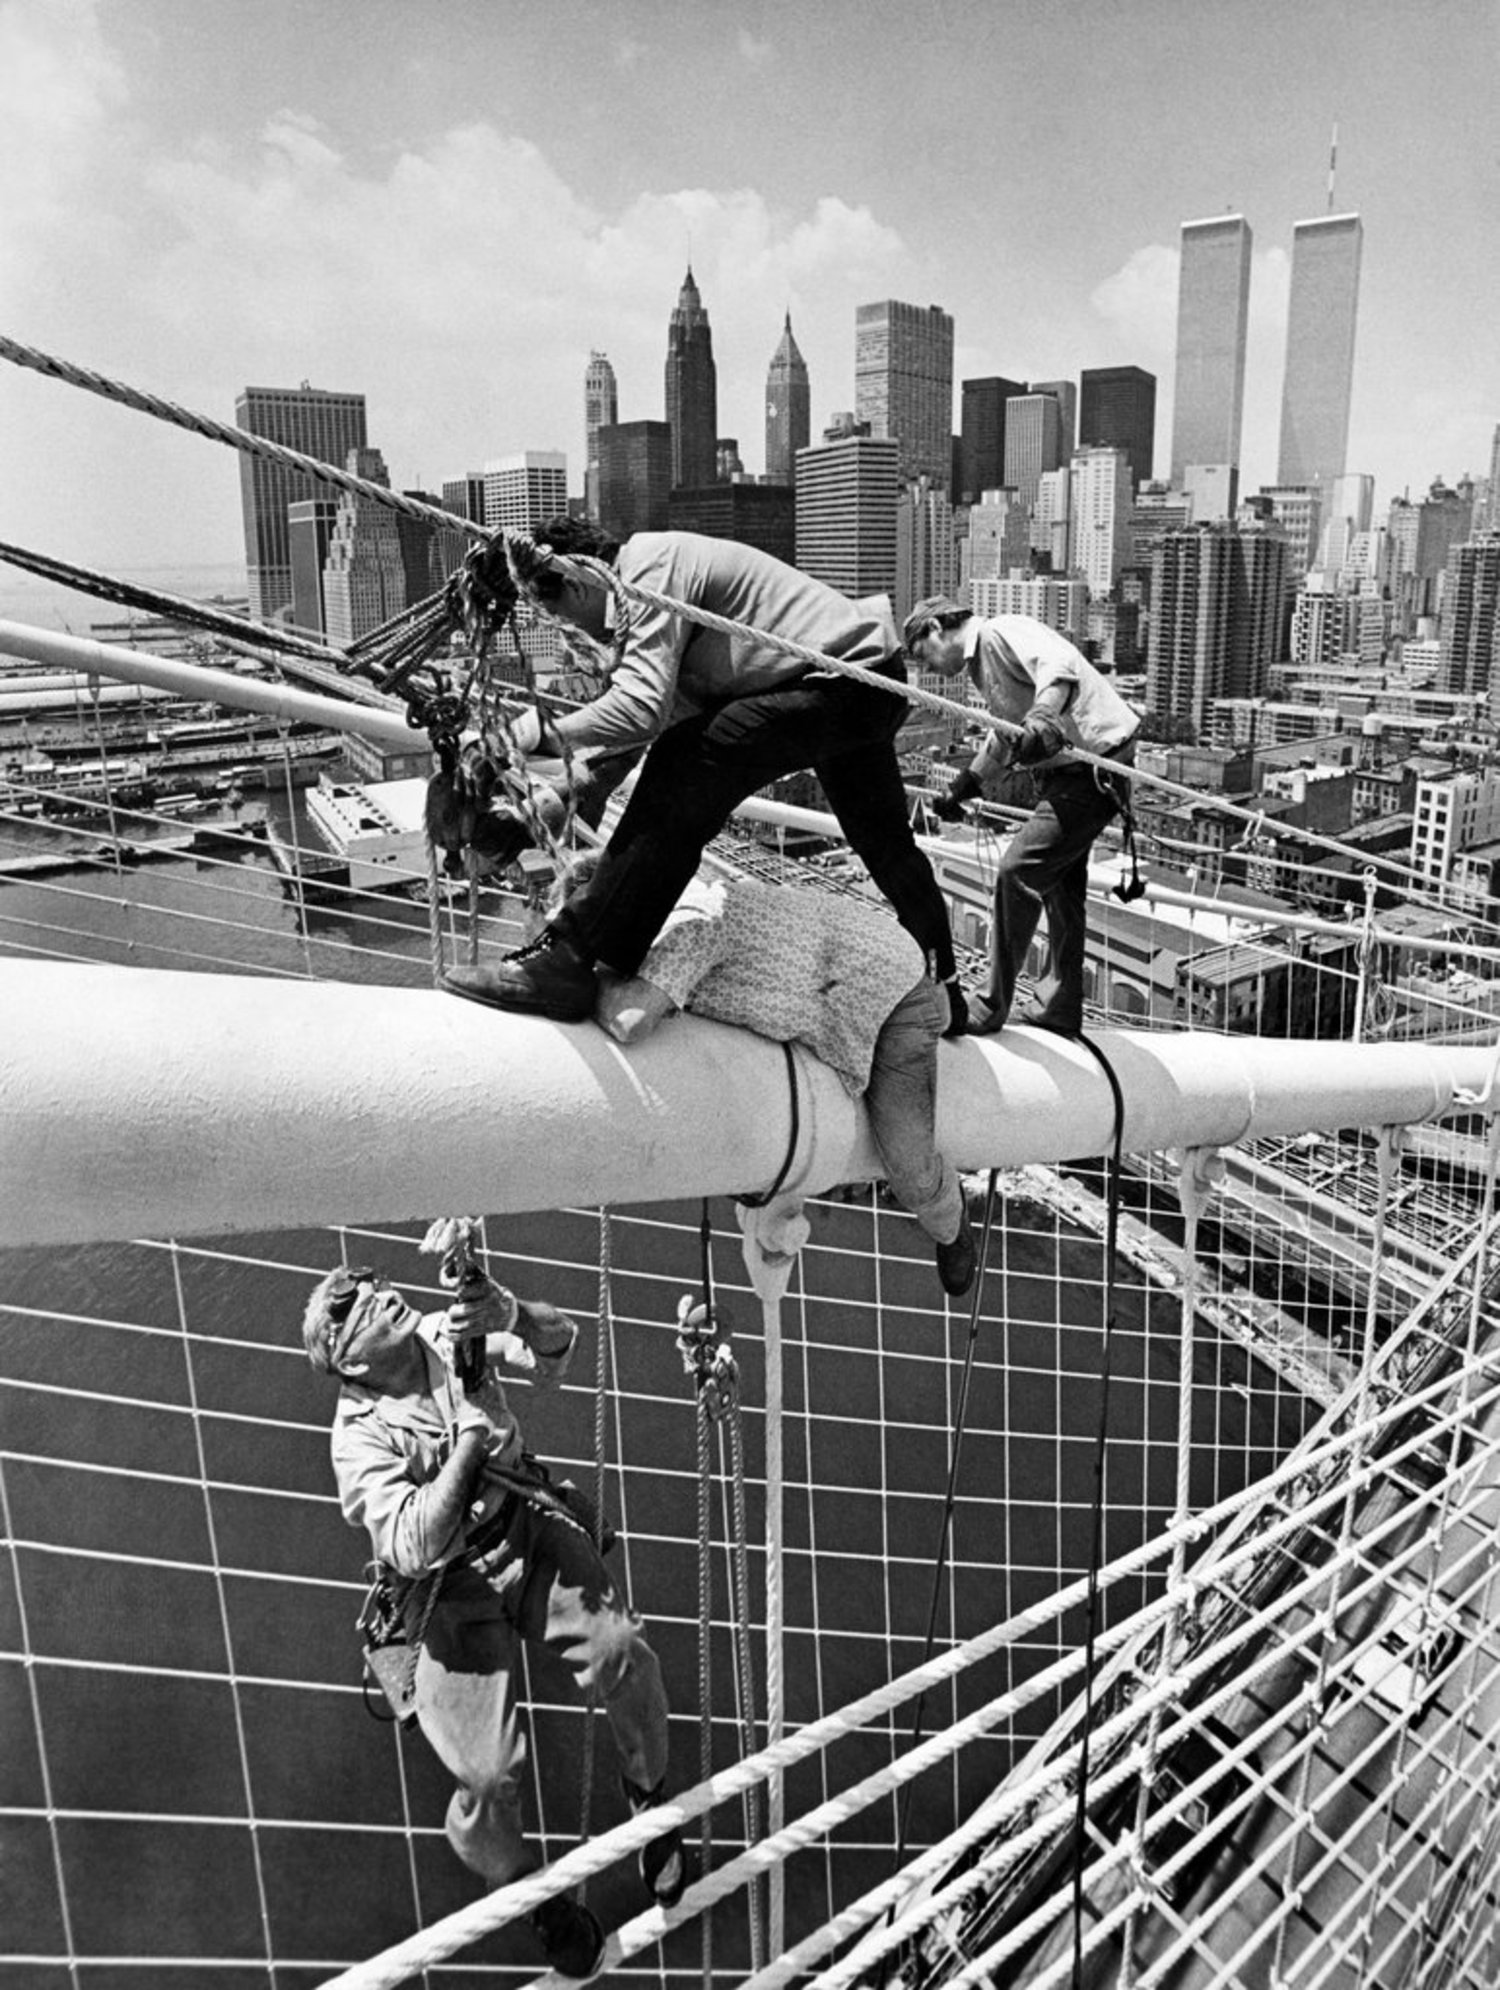 Vintage Photograph of Ironworkers Fixing a Snapped Cable Up High on the Brooklyn Bridge, 1981